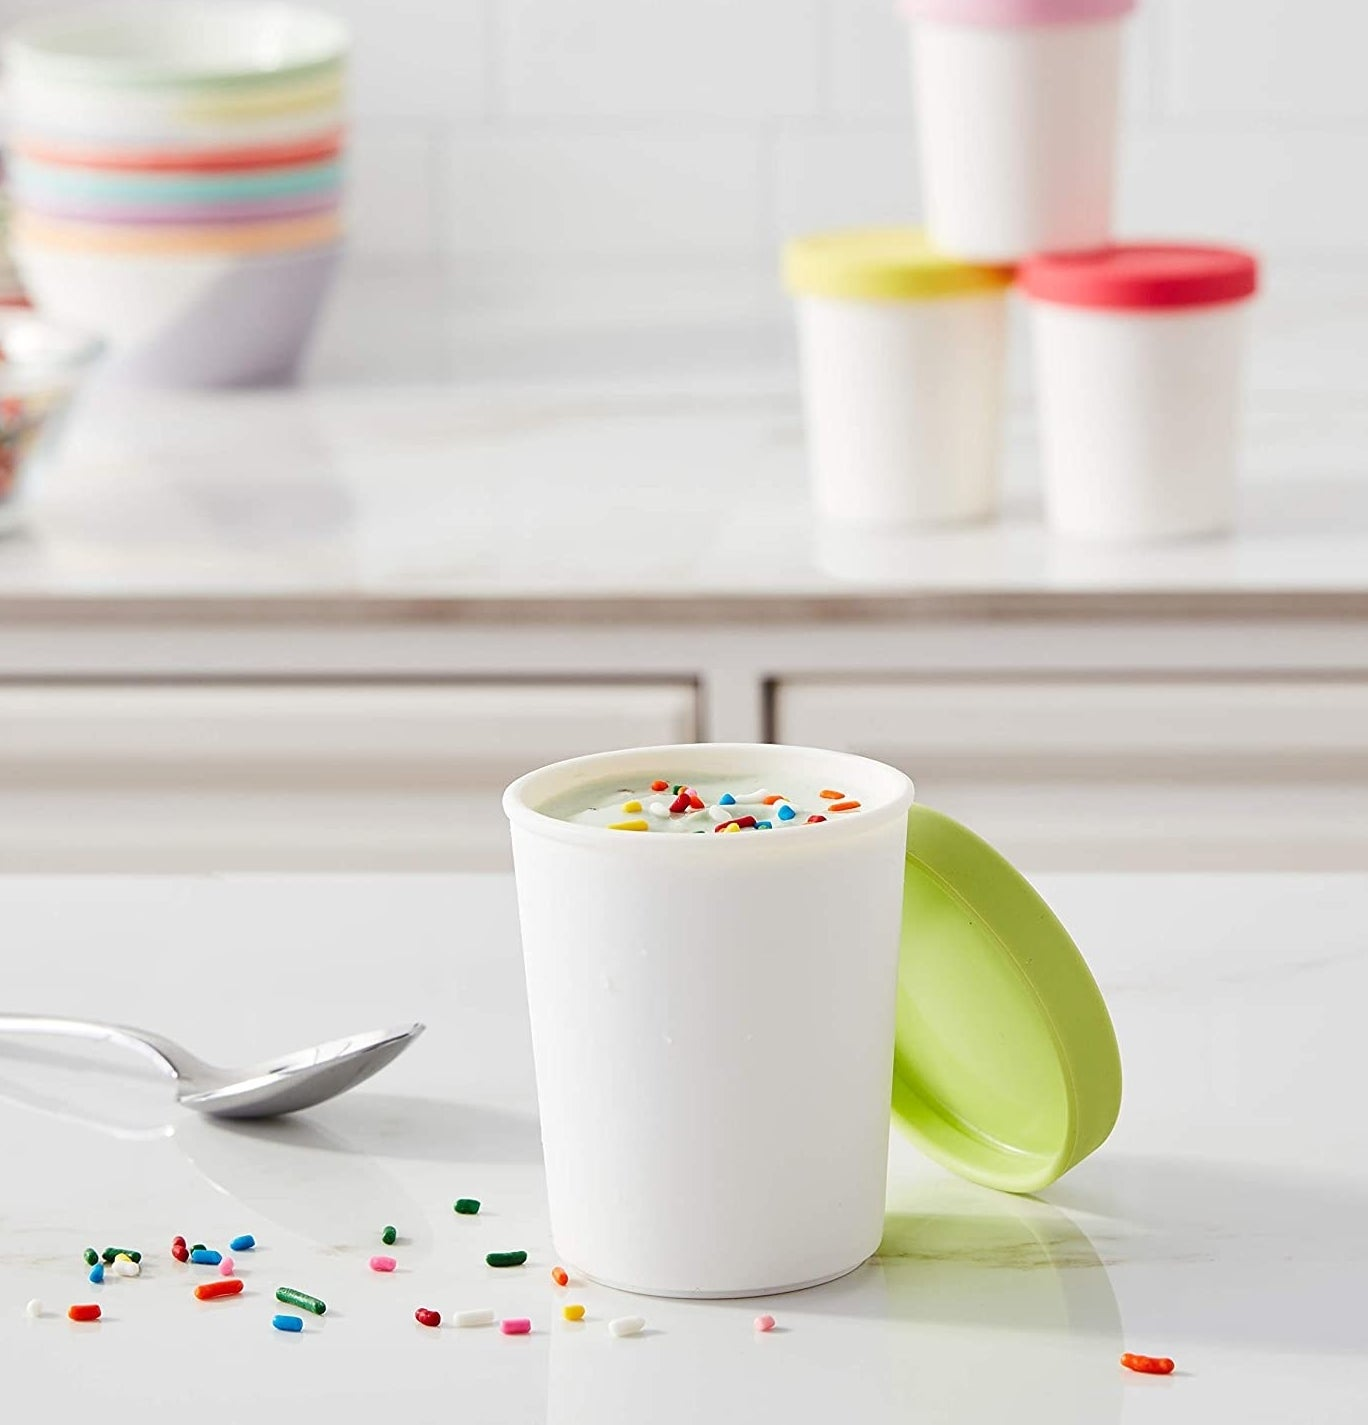 A mini ice cream tub full of vanilla ice cream sits on a countertop with scattered sprinkles around it